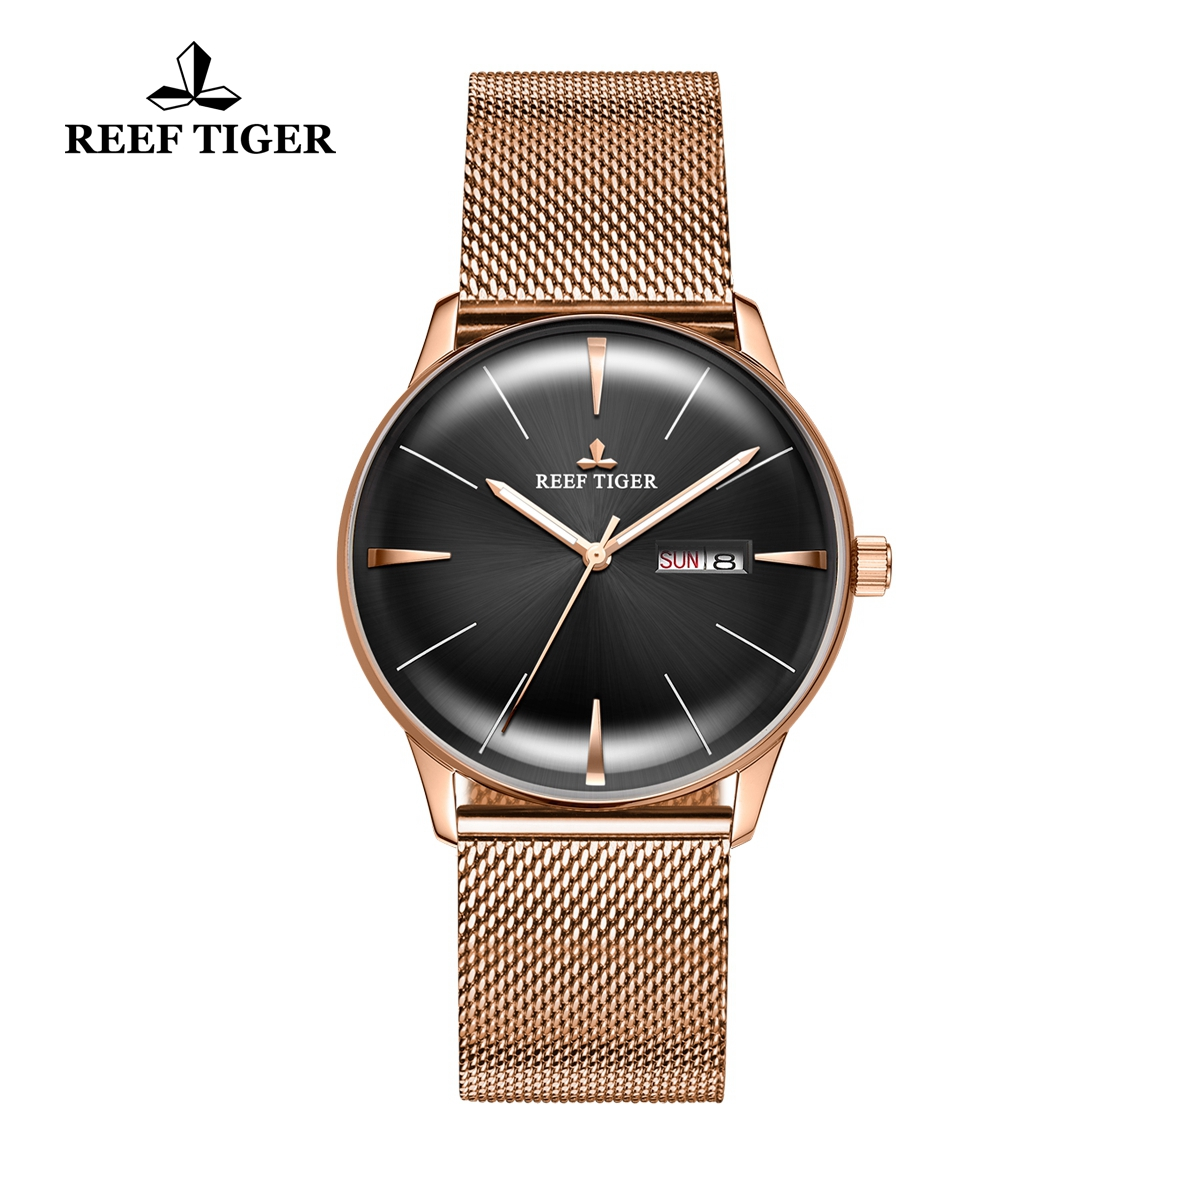 Reef Tiger Classic Heritor Automatic Watch Black Dial Rose Gold For Men Watches RGA8238-PBP